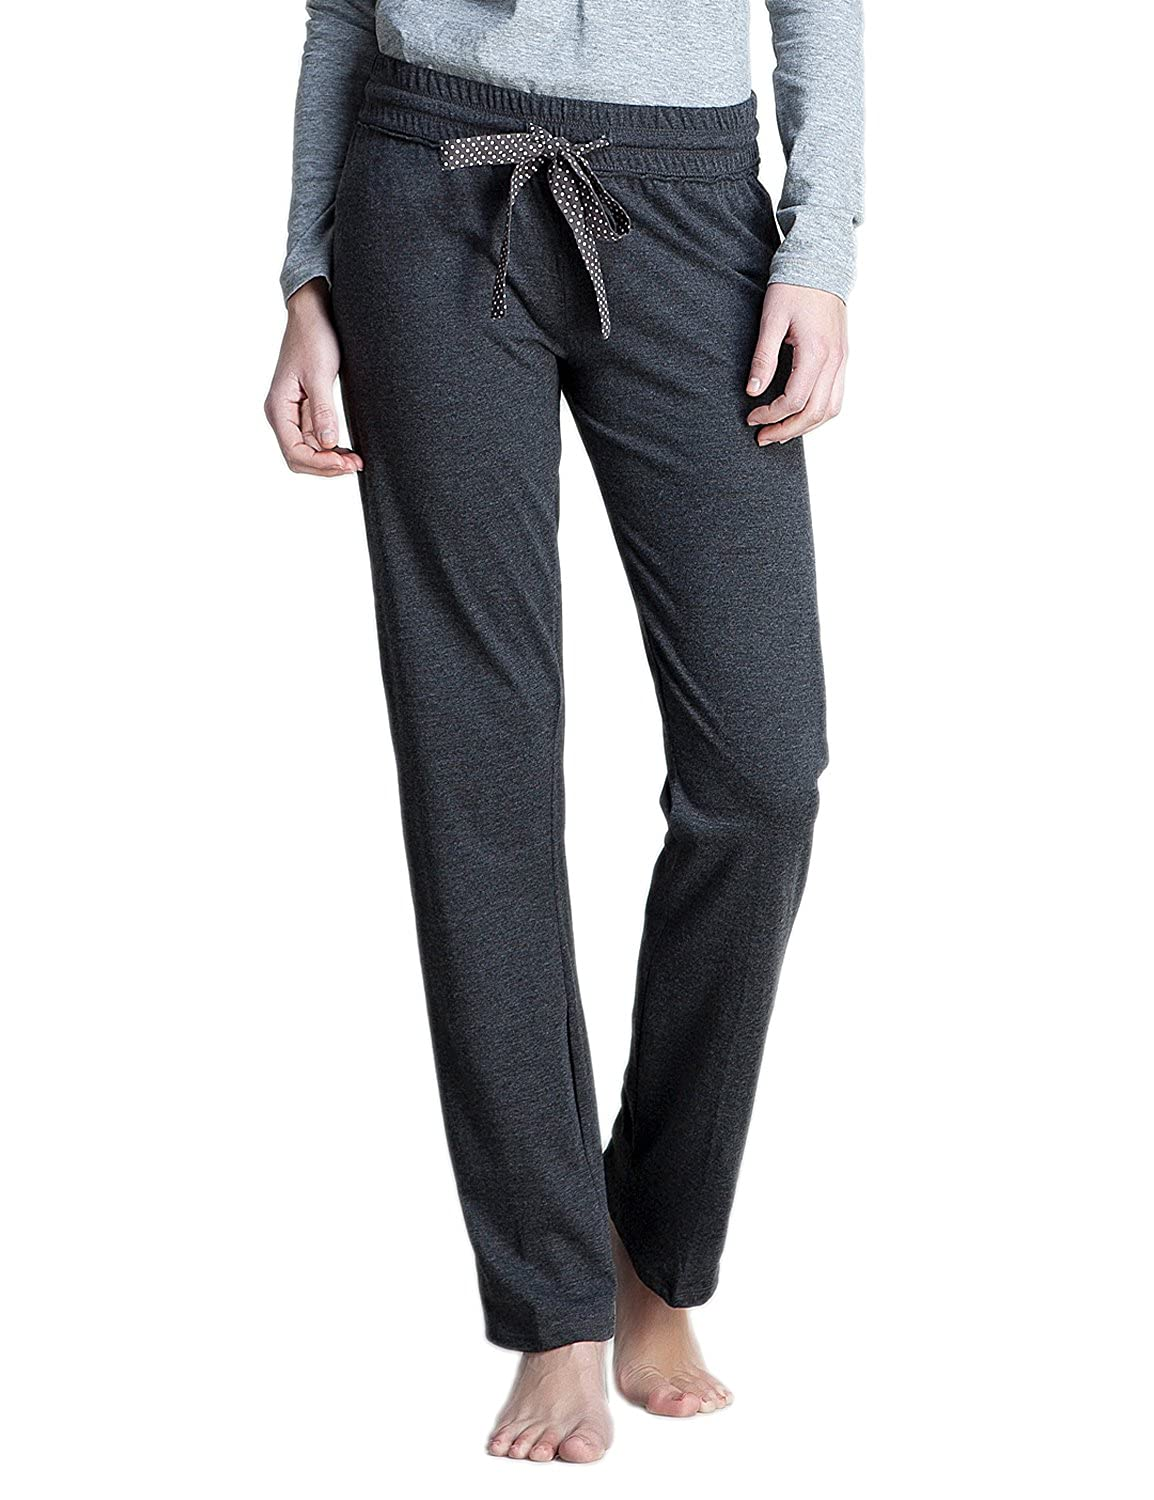 women'secret Long cotton bottoms